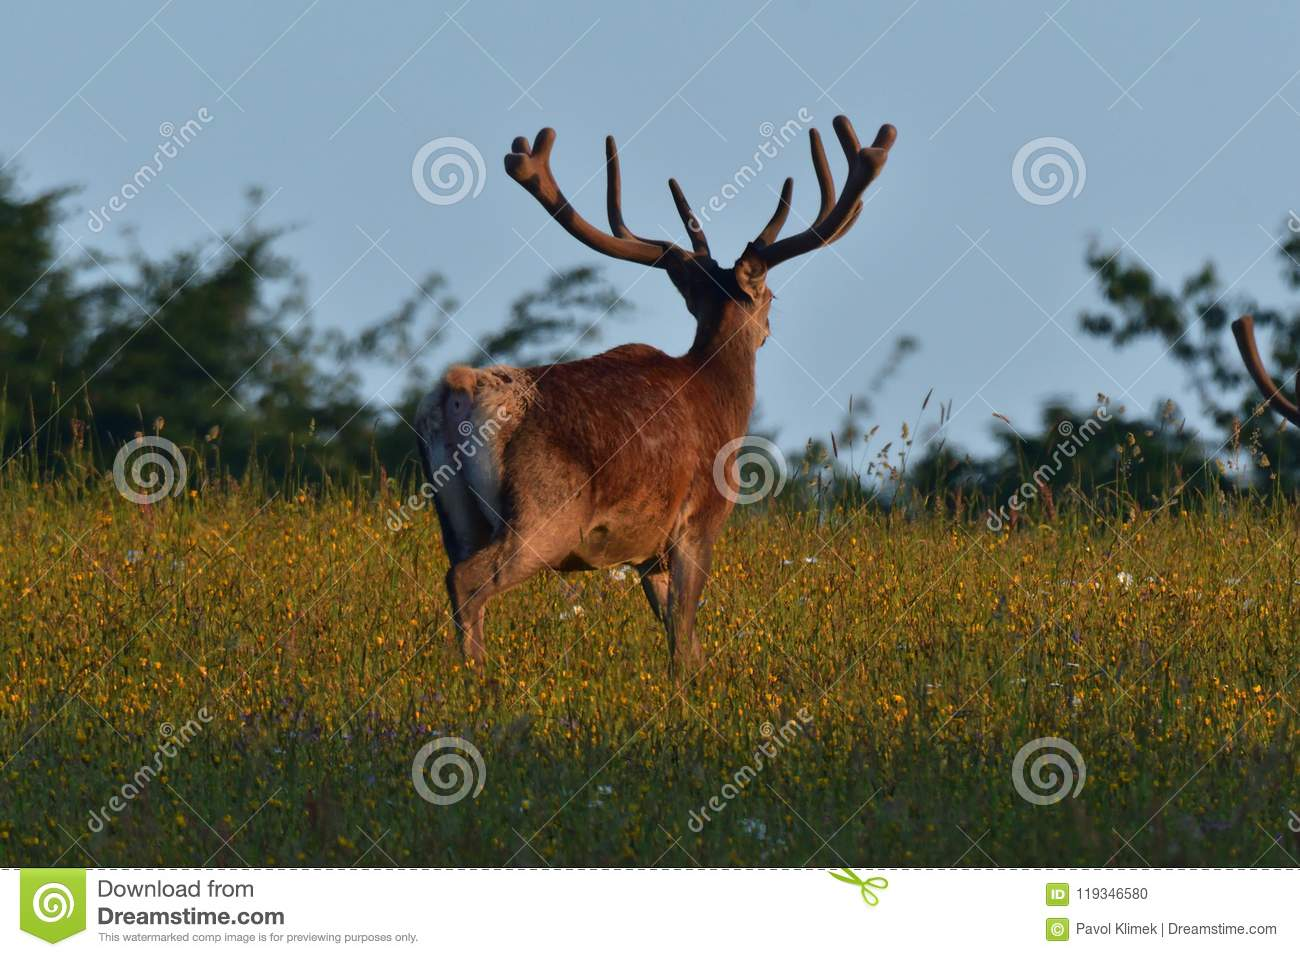 Deer stag with antler walking on the meadow